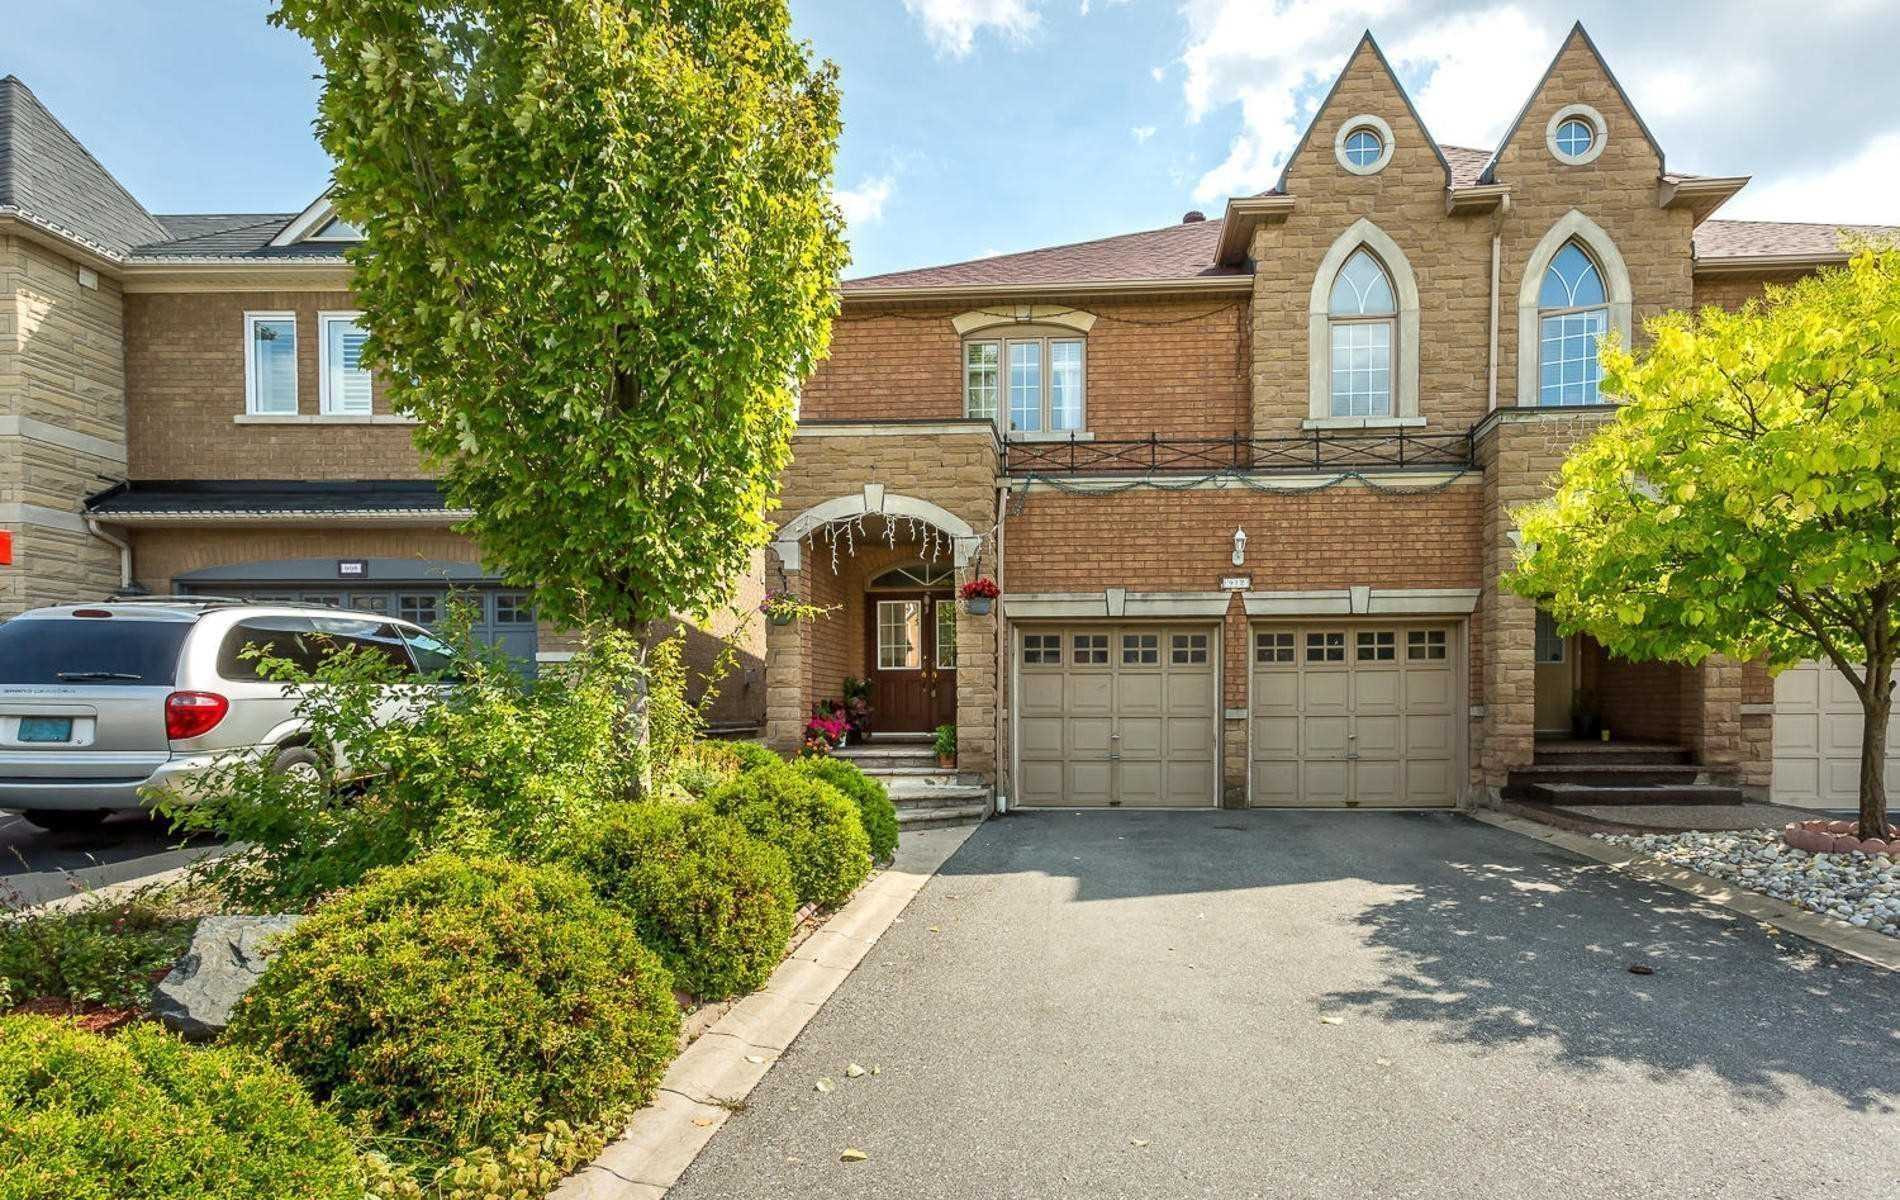 For Rent: 912 Mandolin Place, Mississauga, ON | 4 Bed, 3 Bath Townhouse for $2700.00.